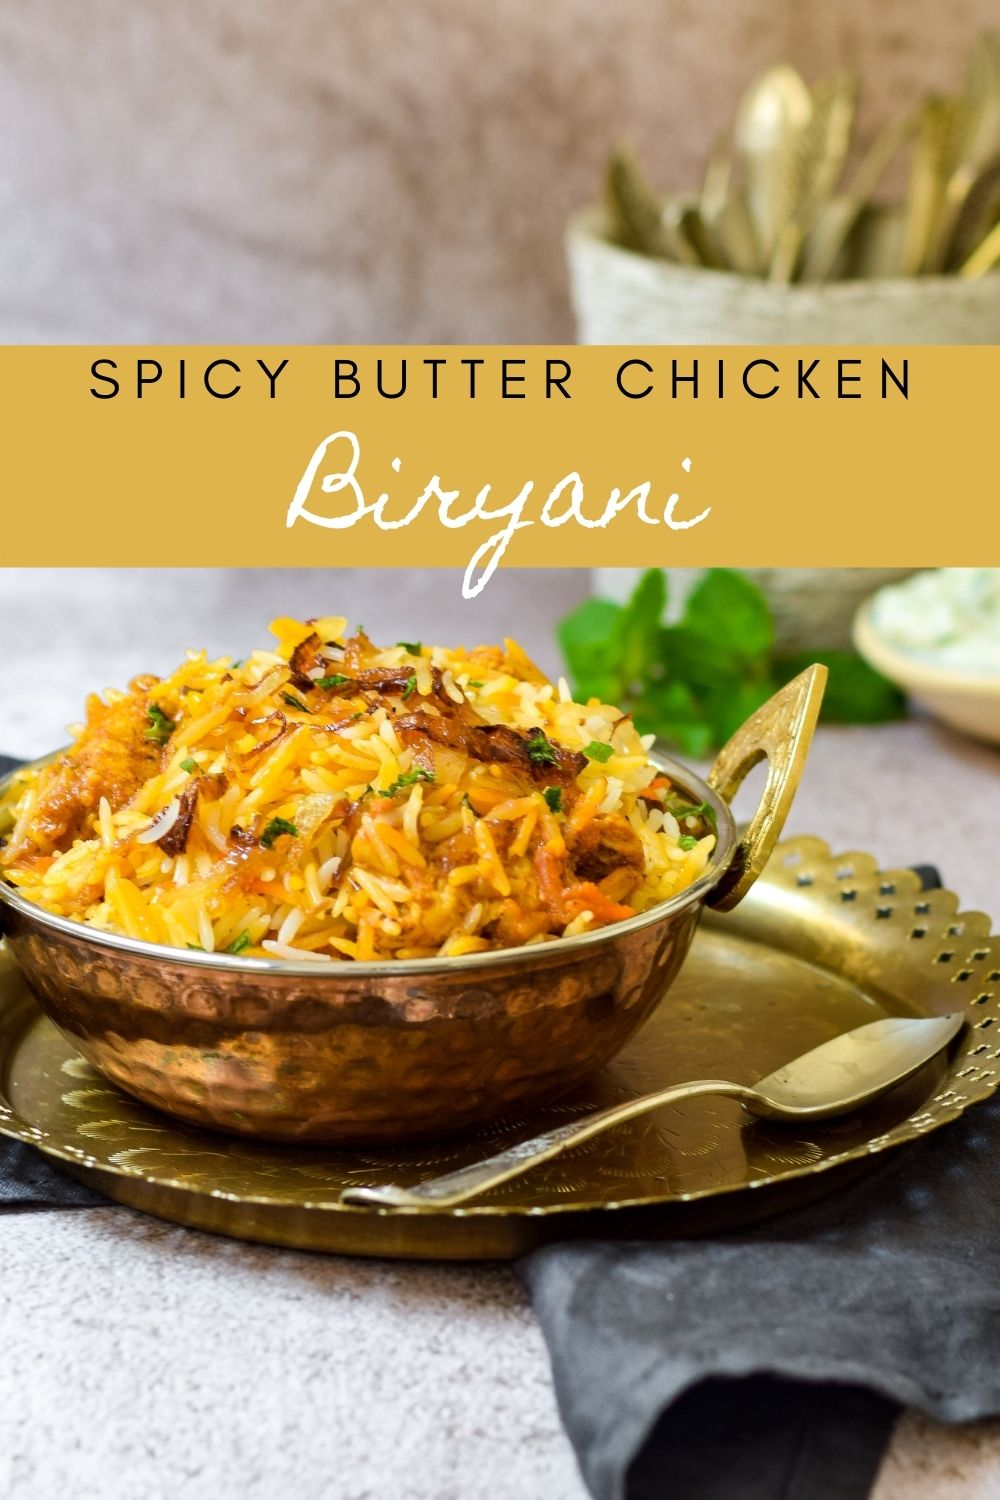 Spicy Butter Chicken Biryani in a copper dish